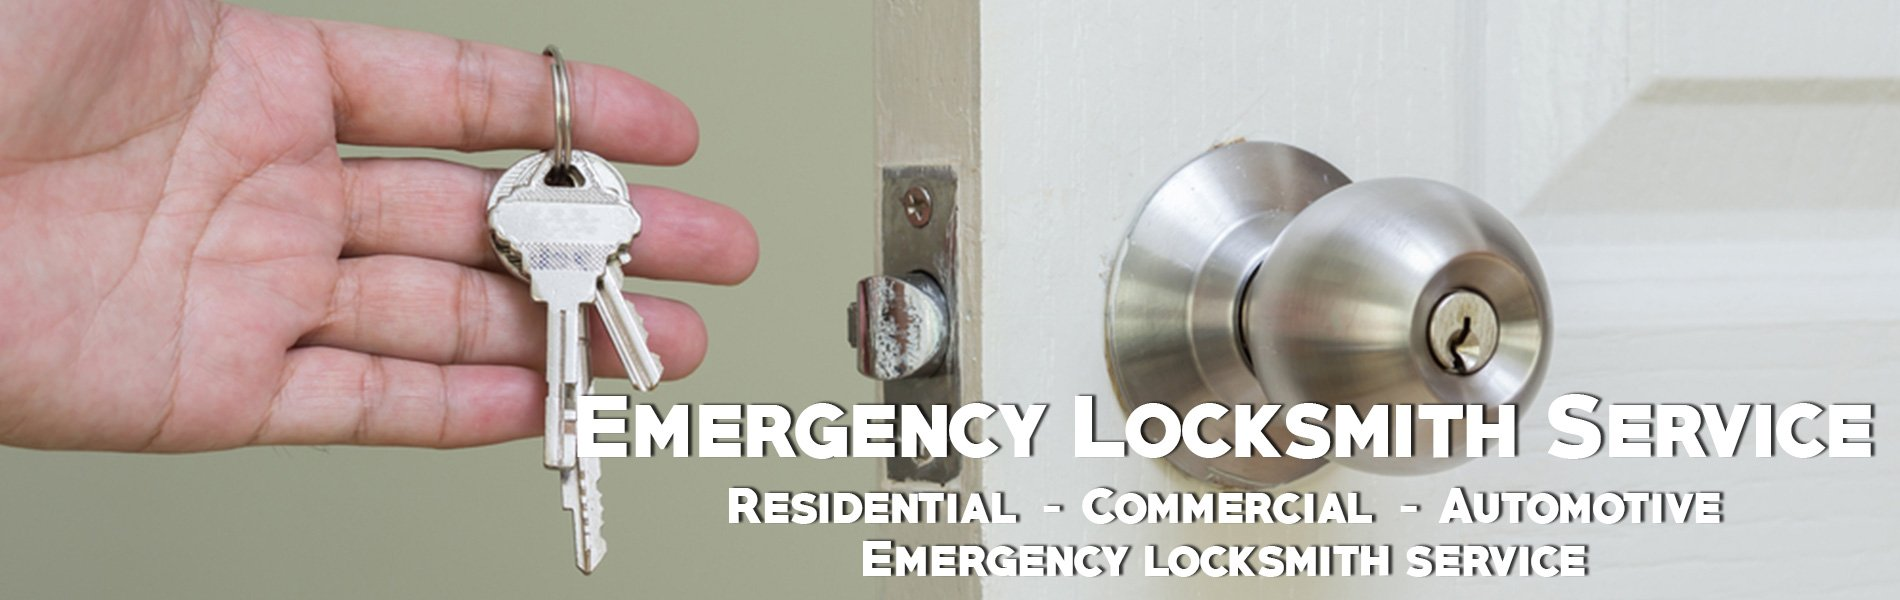 Elite Locksmith Services Mcdonough, GA 678-769-3164